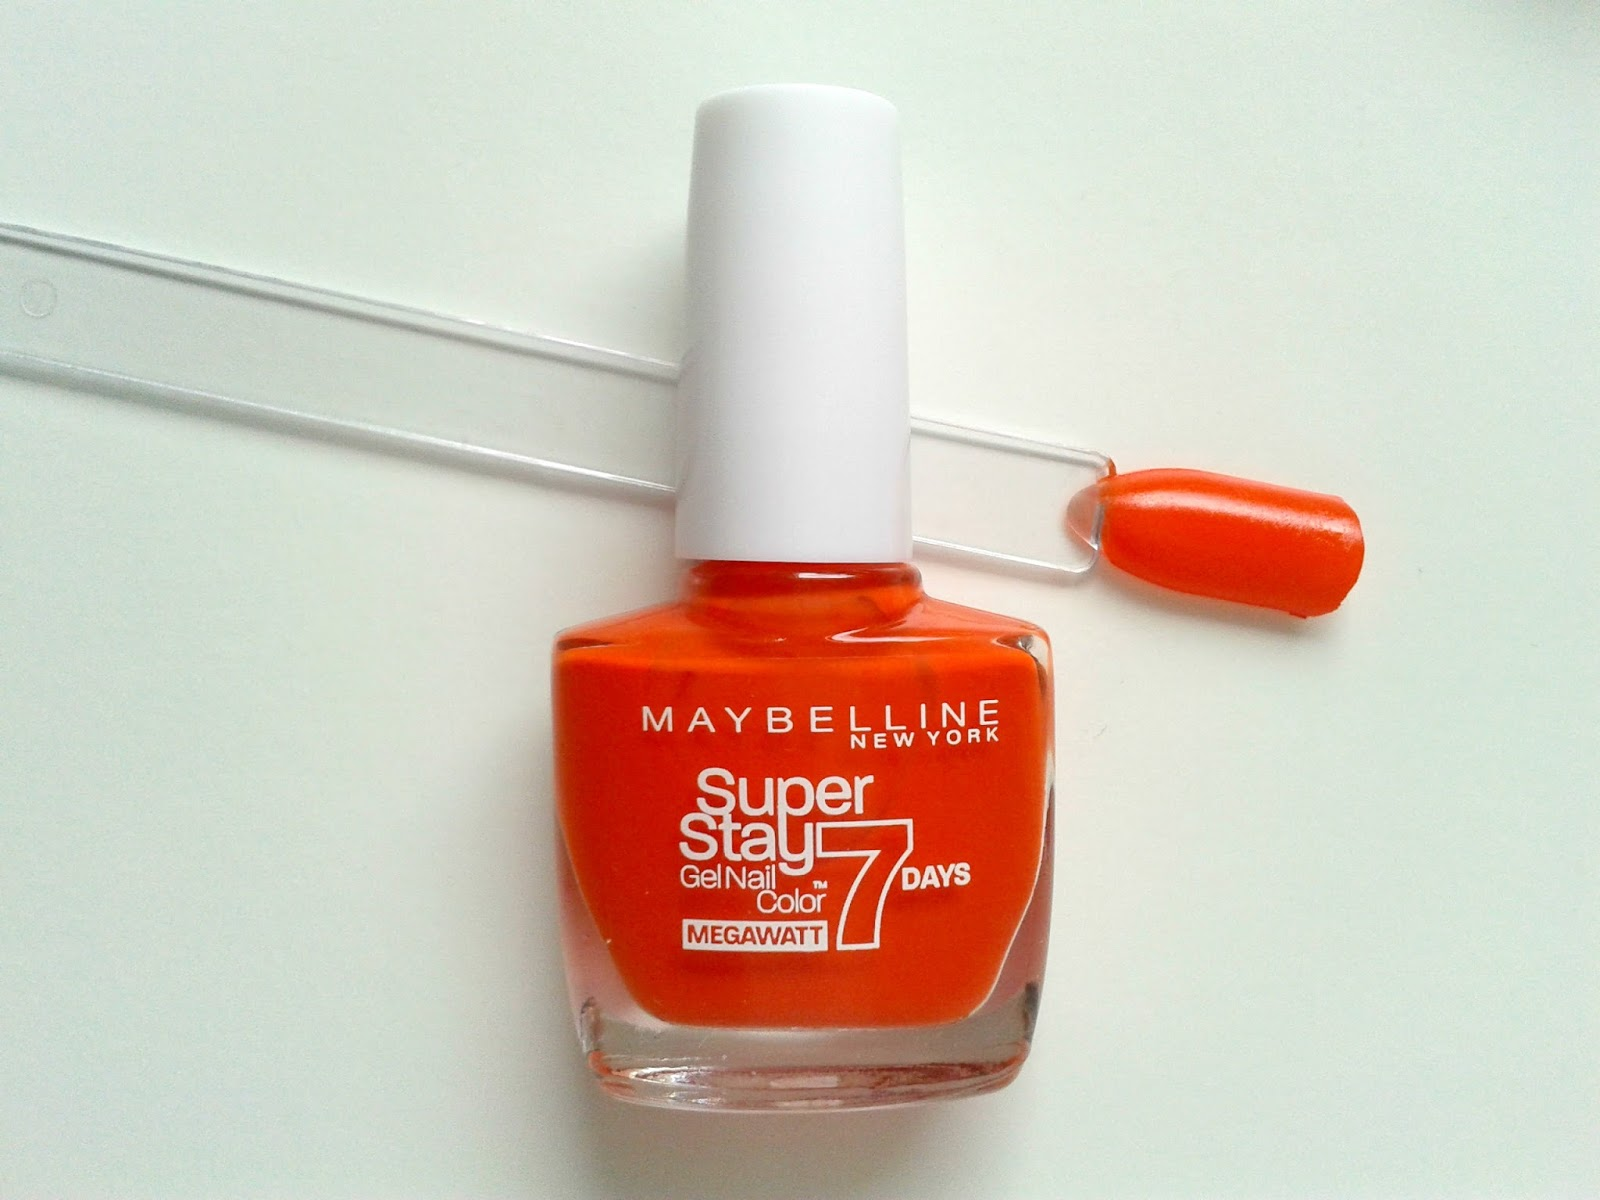 Maybelline New York Super Stay 7 Days Gel Nail Colours | Ellis Tuesday